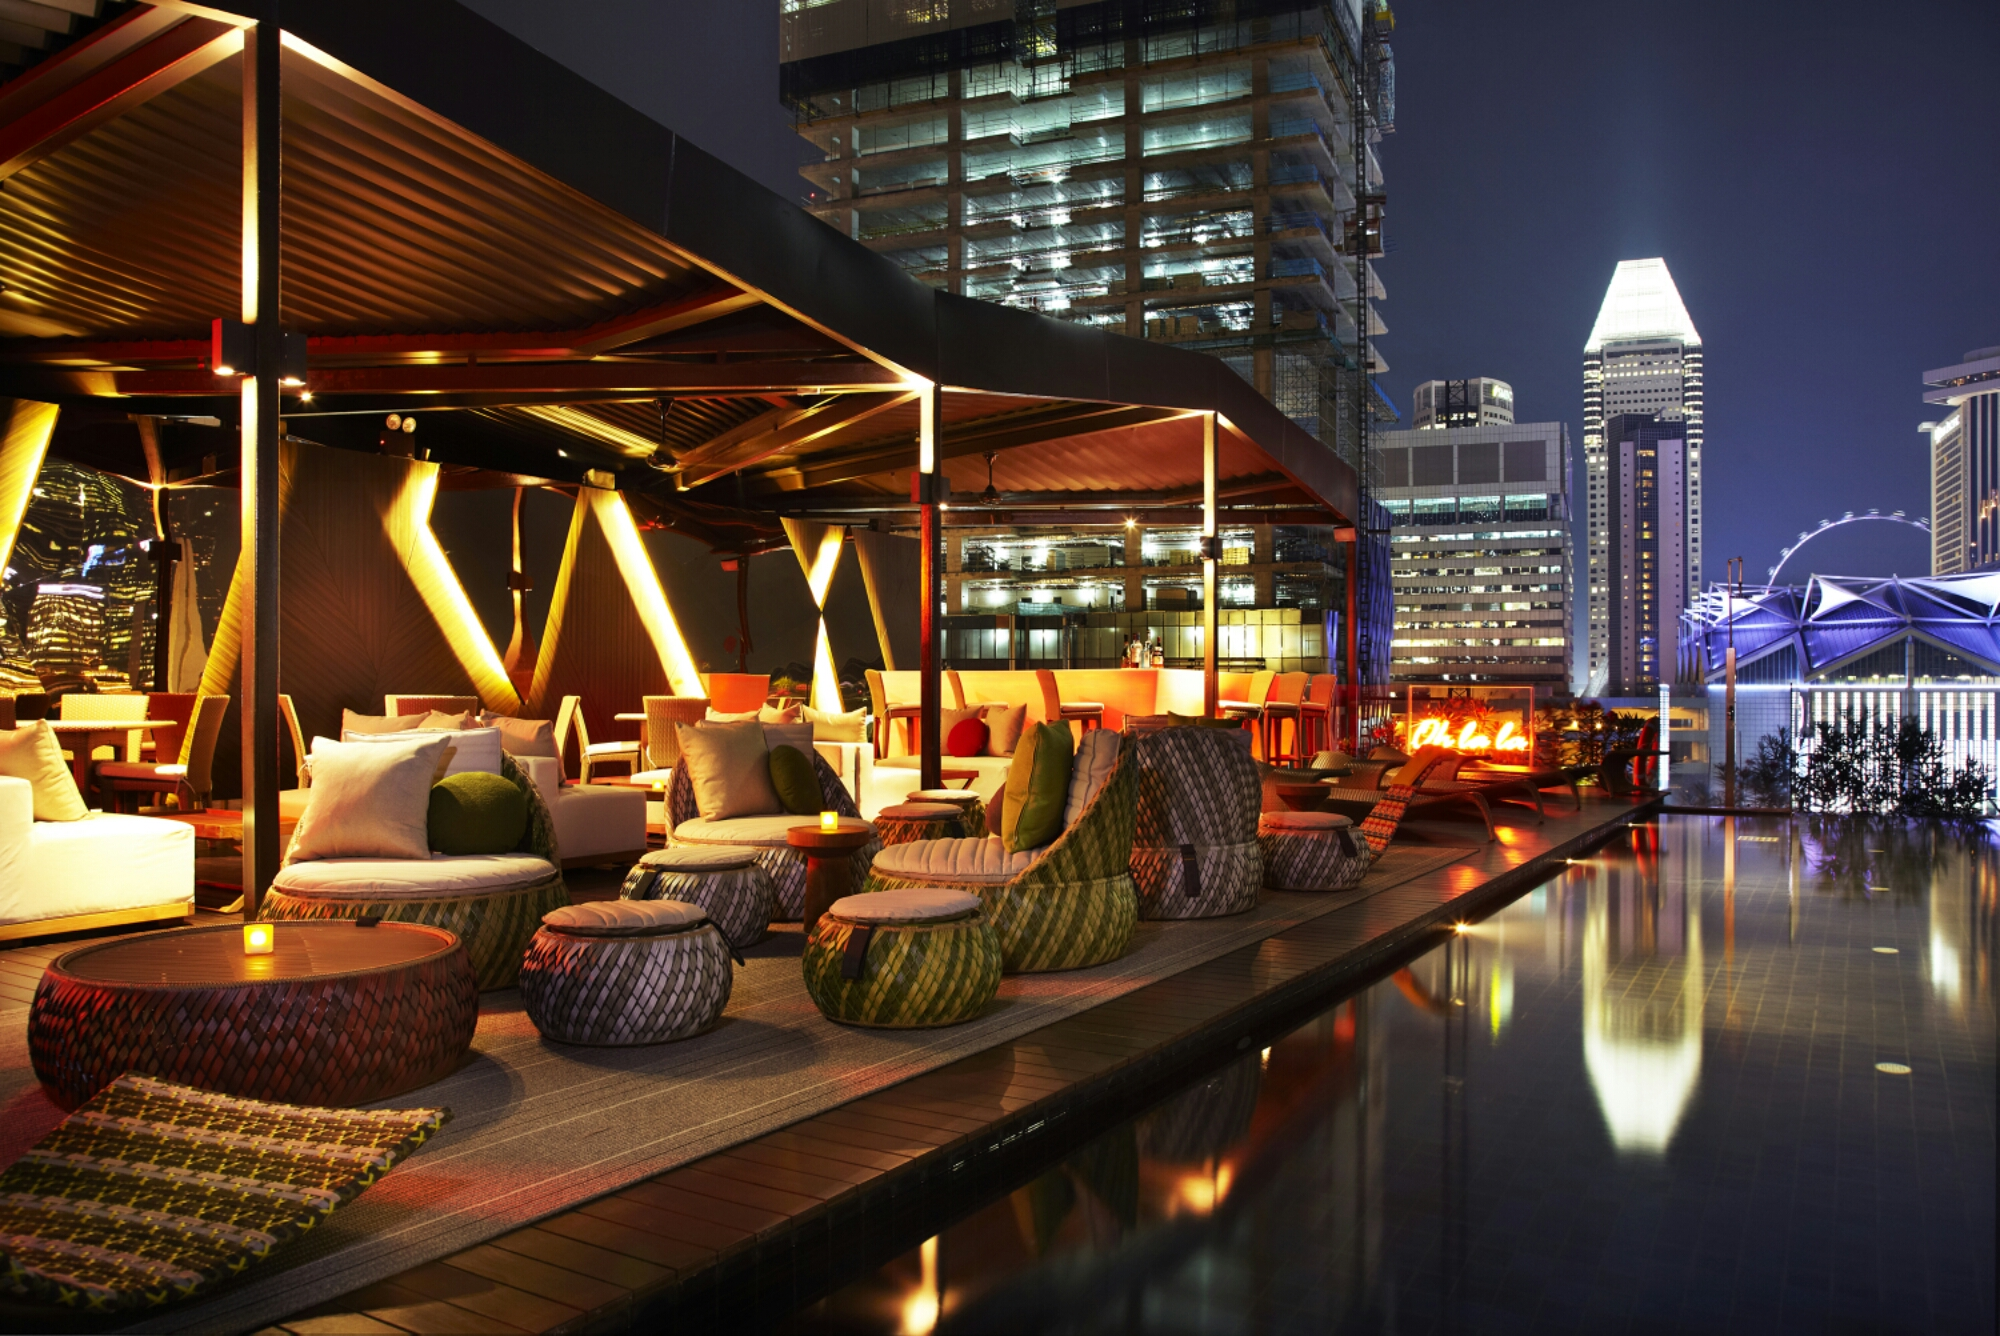 7 Best Staycation Hotel For Young Couples In Singapore